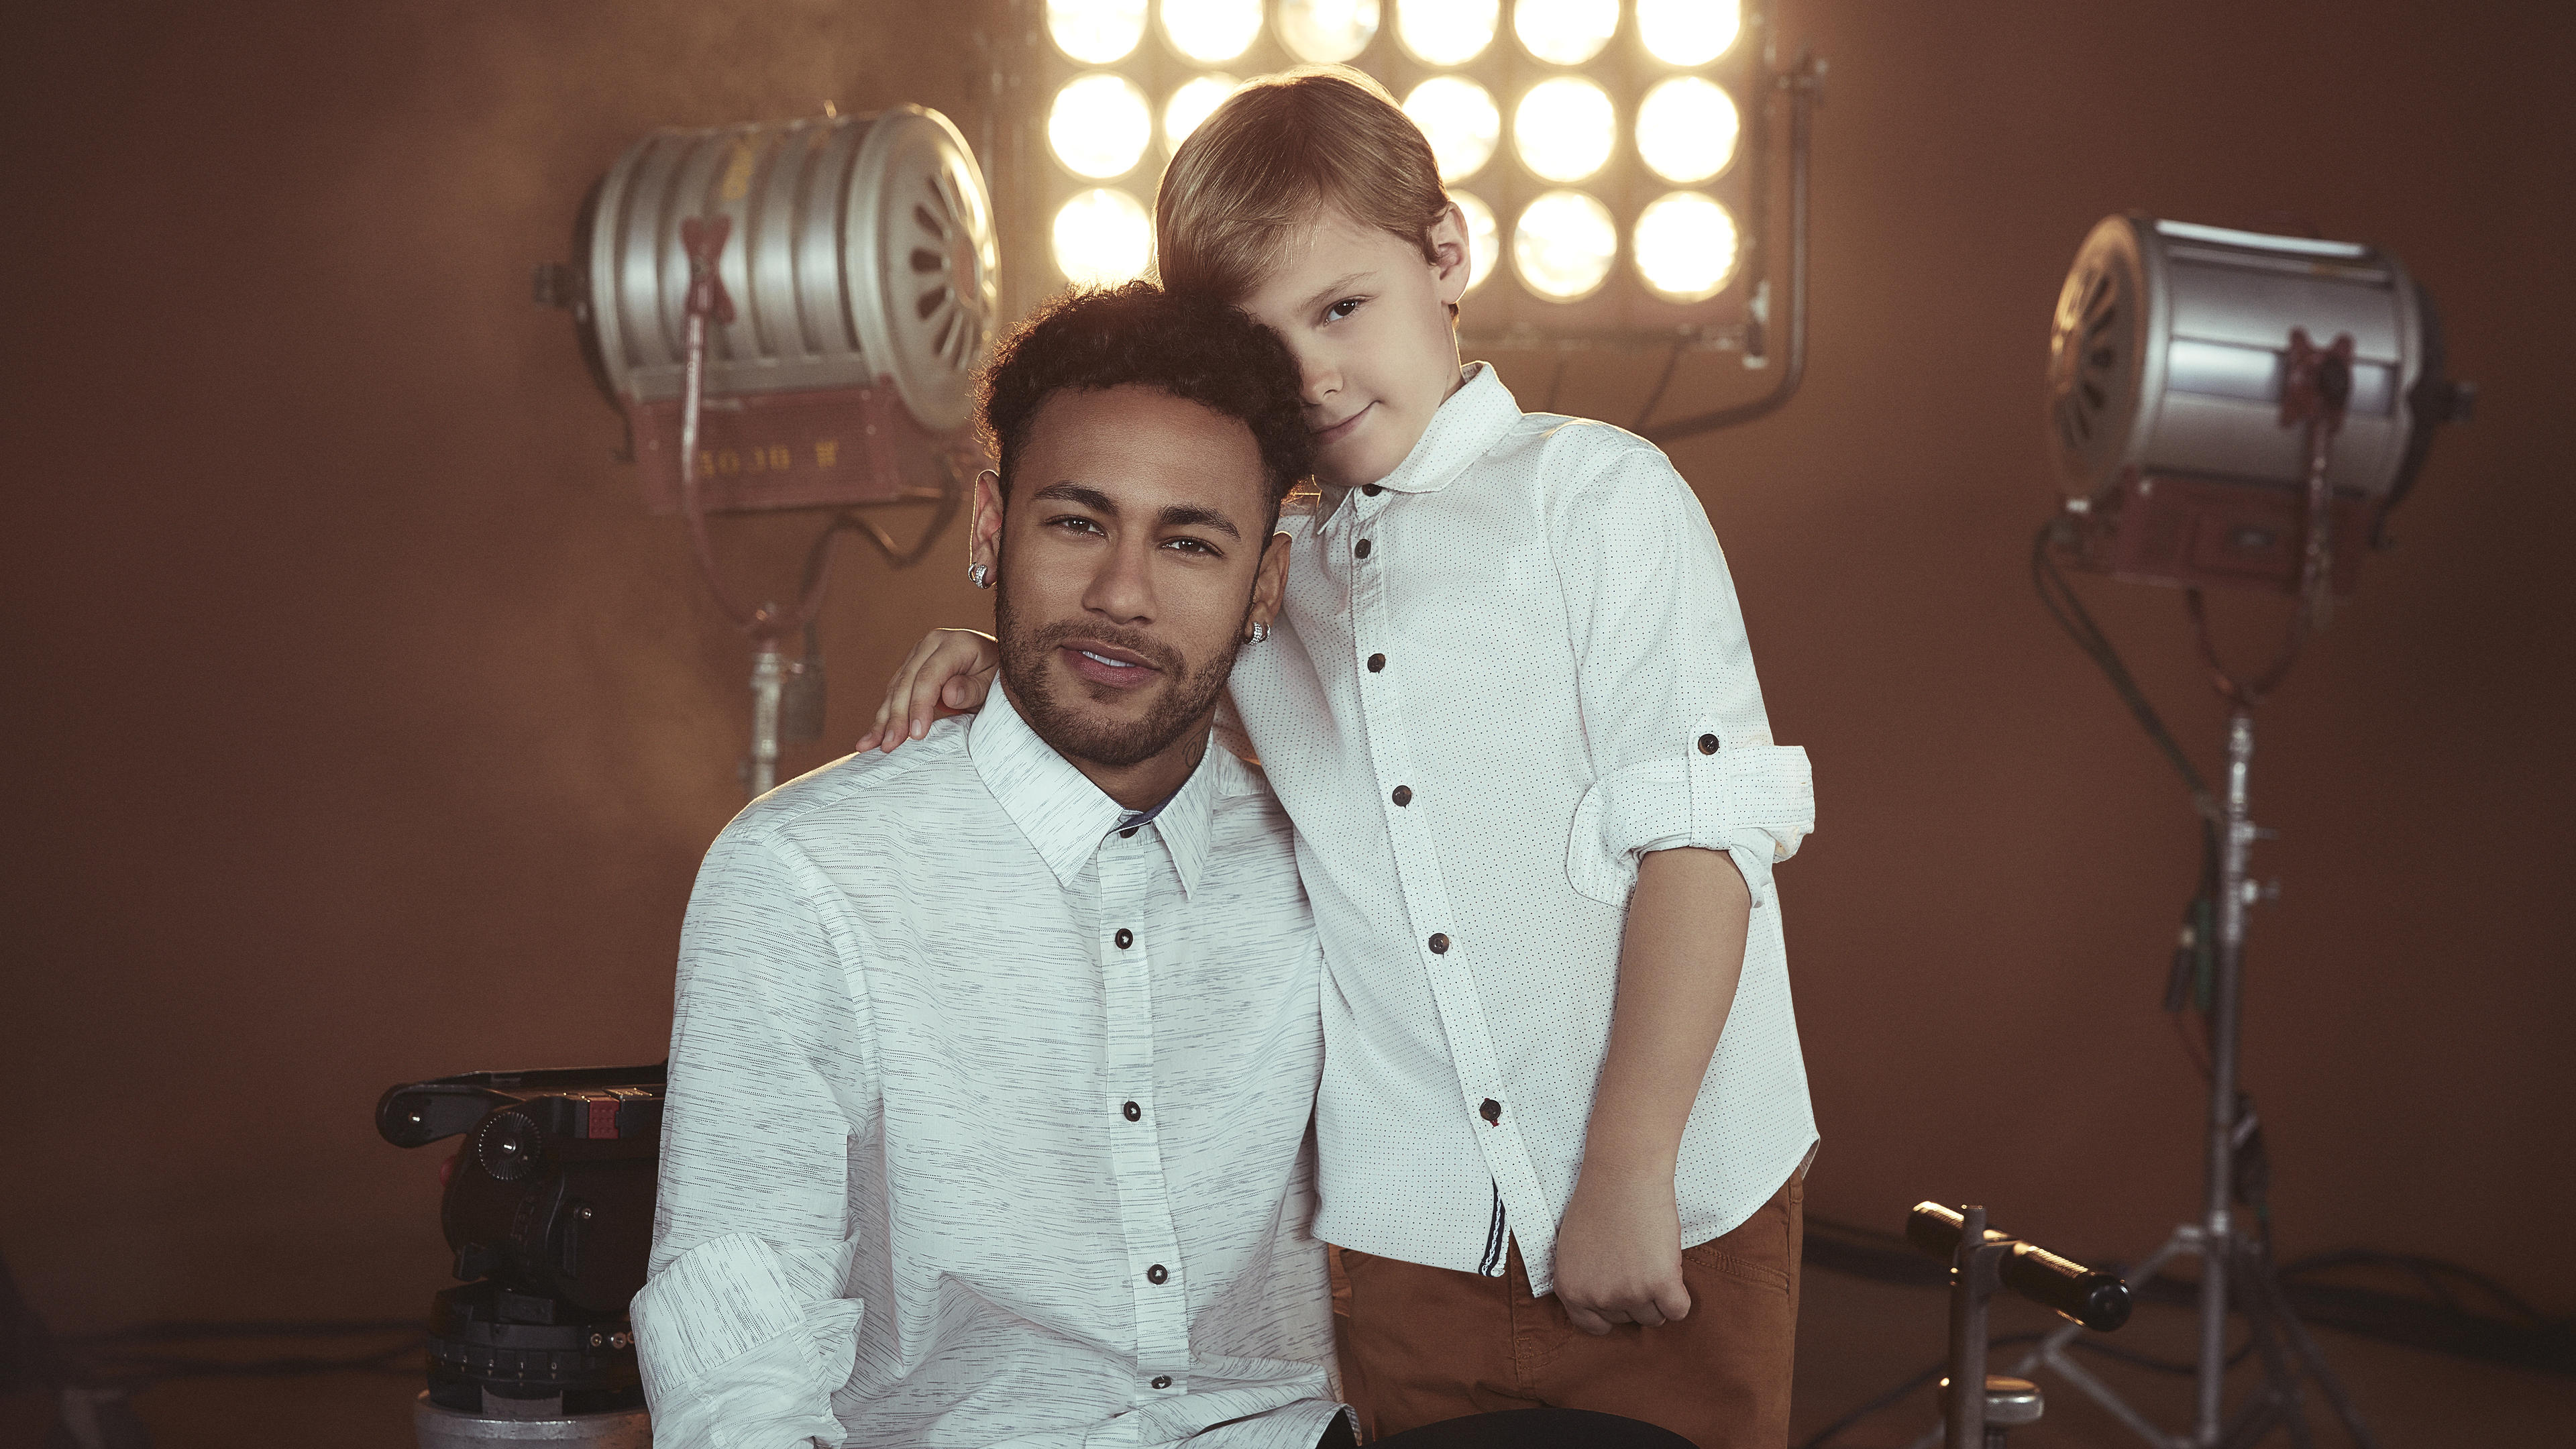 neymar and david lucca his son 1538786870 - Neymar And David Lucca His Son - sports wallpapers, neymar wallpapers, neymar jr wallpapers, male celebrities wallpapers, hd-wallpapers, football wallpapers, fifa world cup russia wallpapers, boys wallpapers, 5k wallpapers, 4k-wallpapers